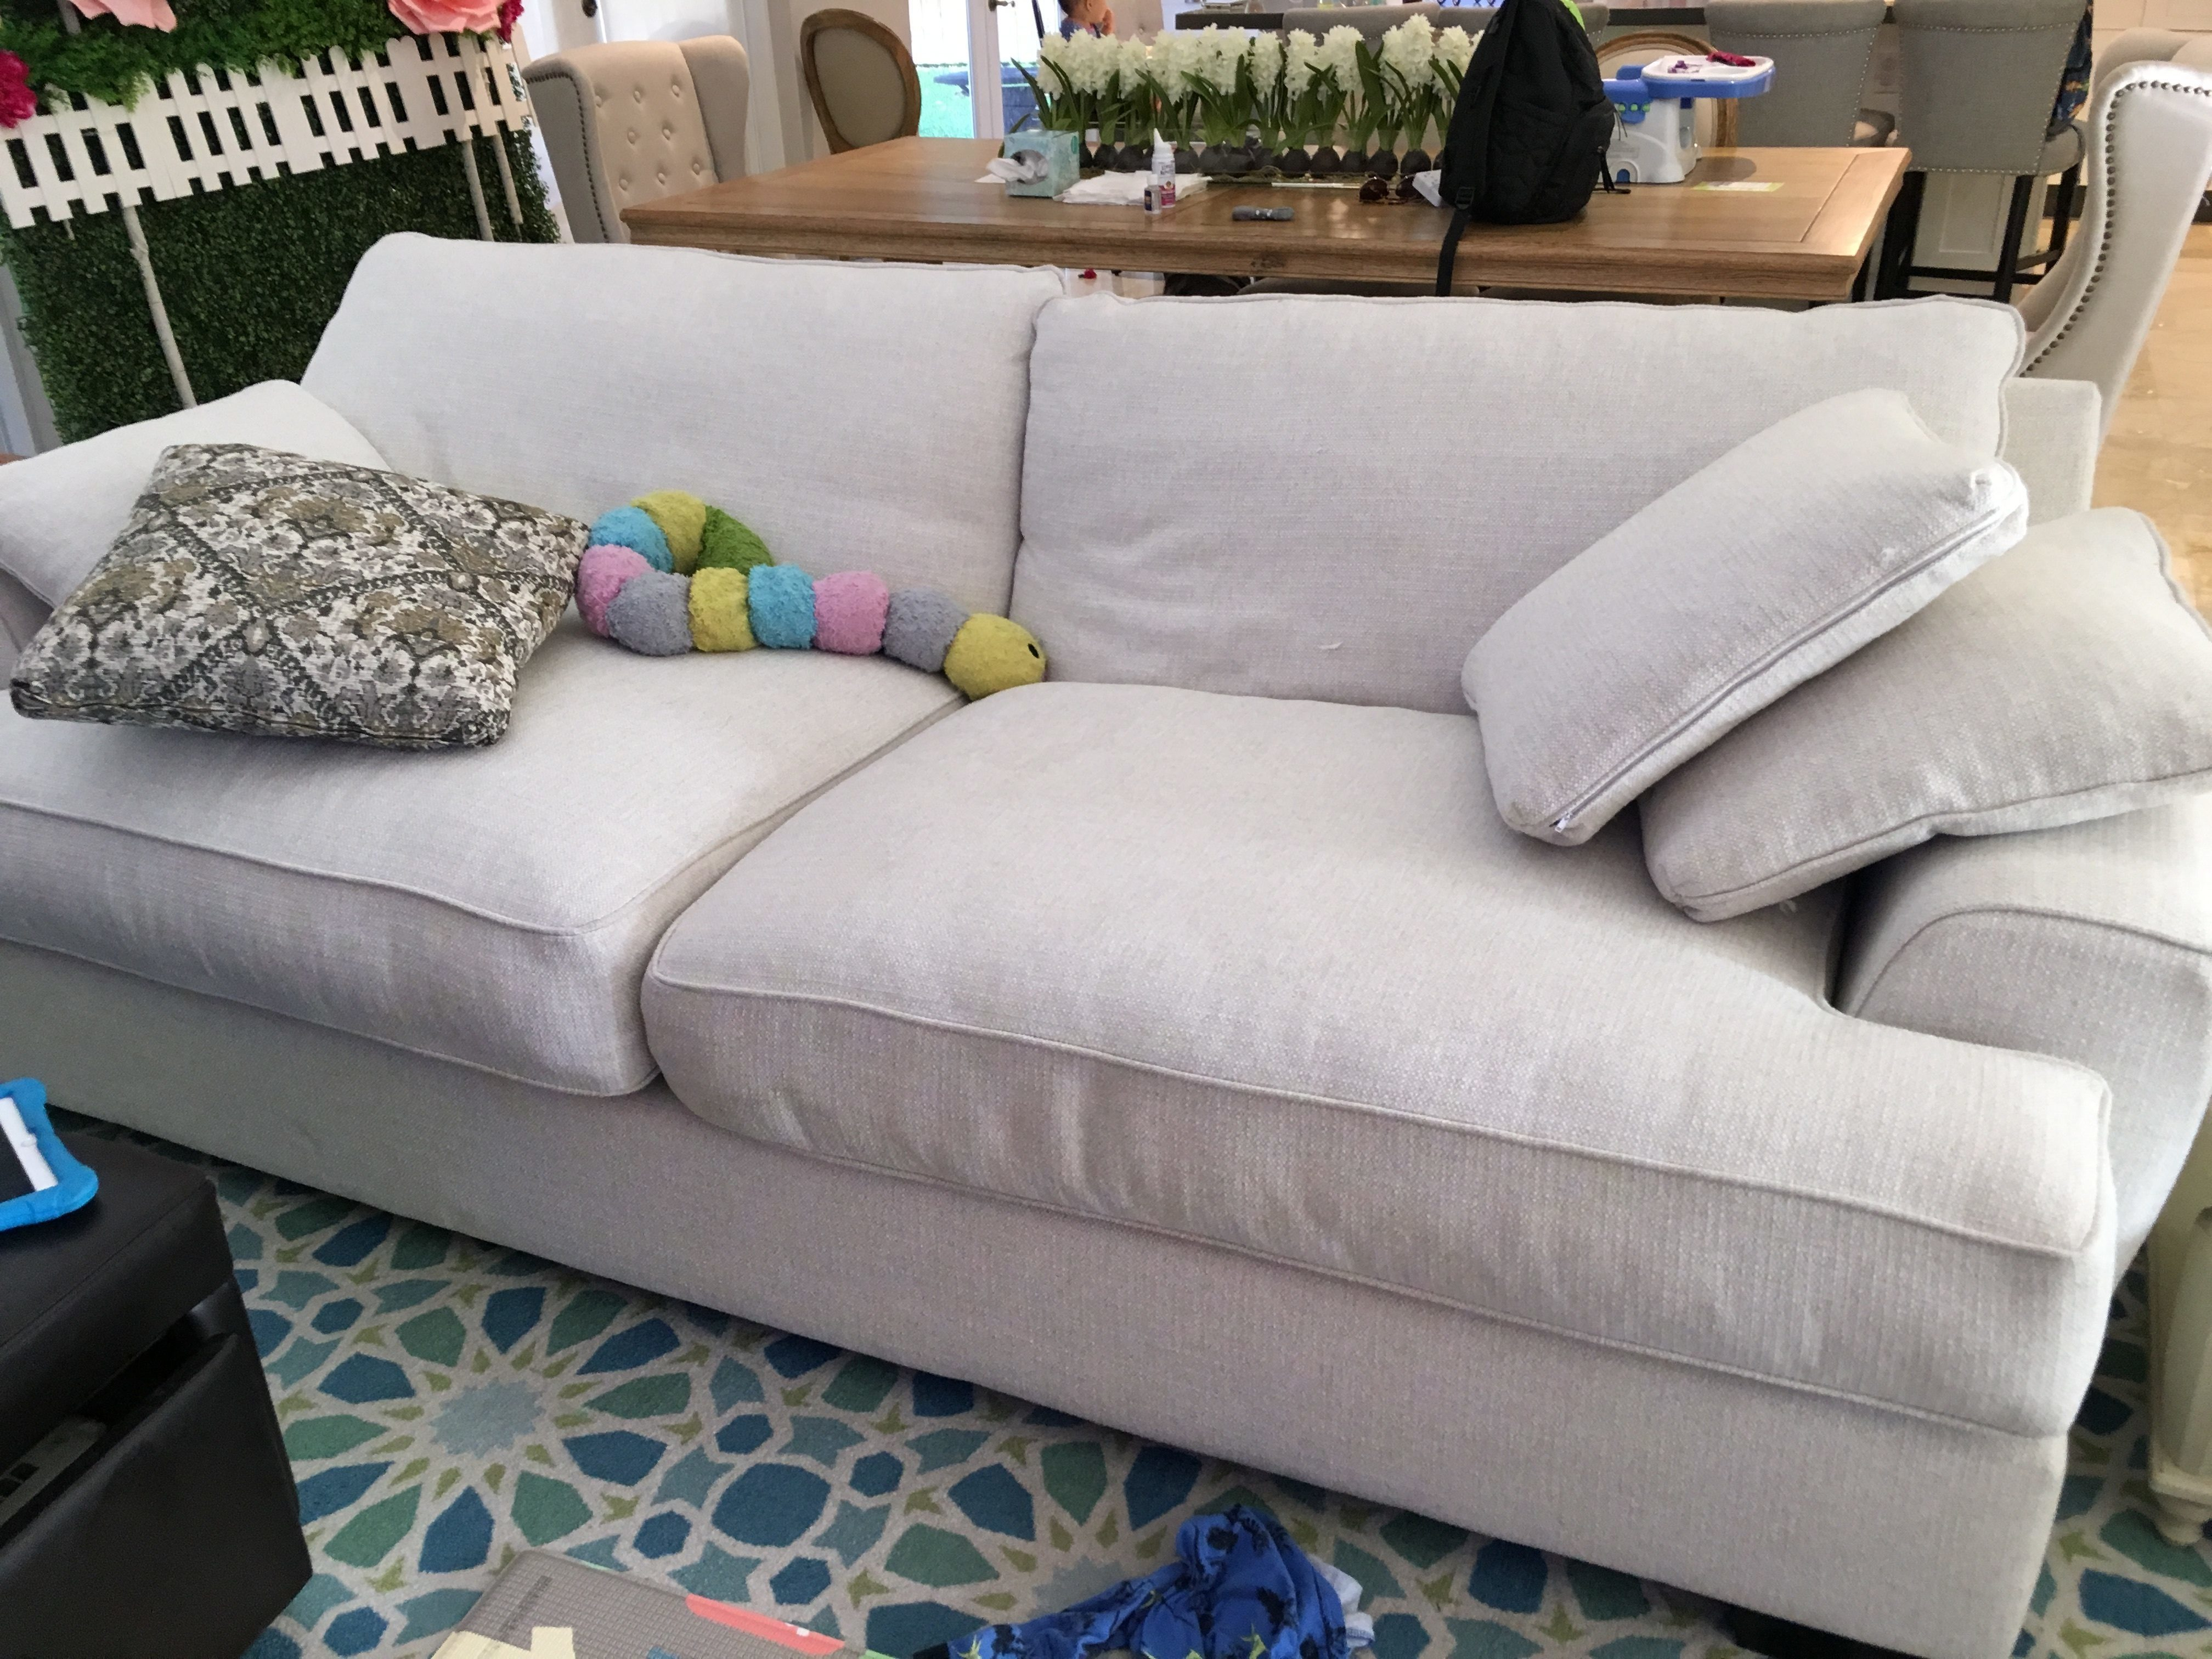 macy s spencer sofa reviews 1 person top 477 complaints and about 39s furniture